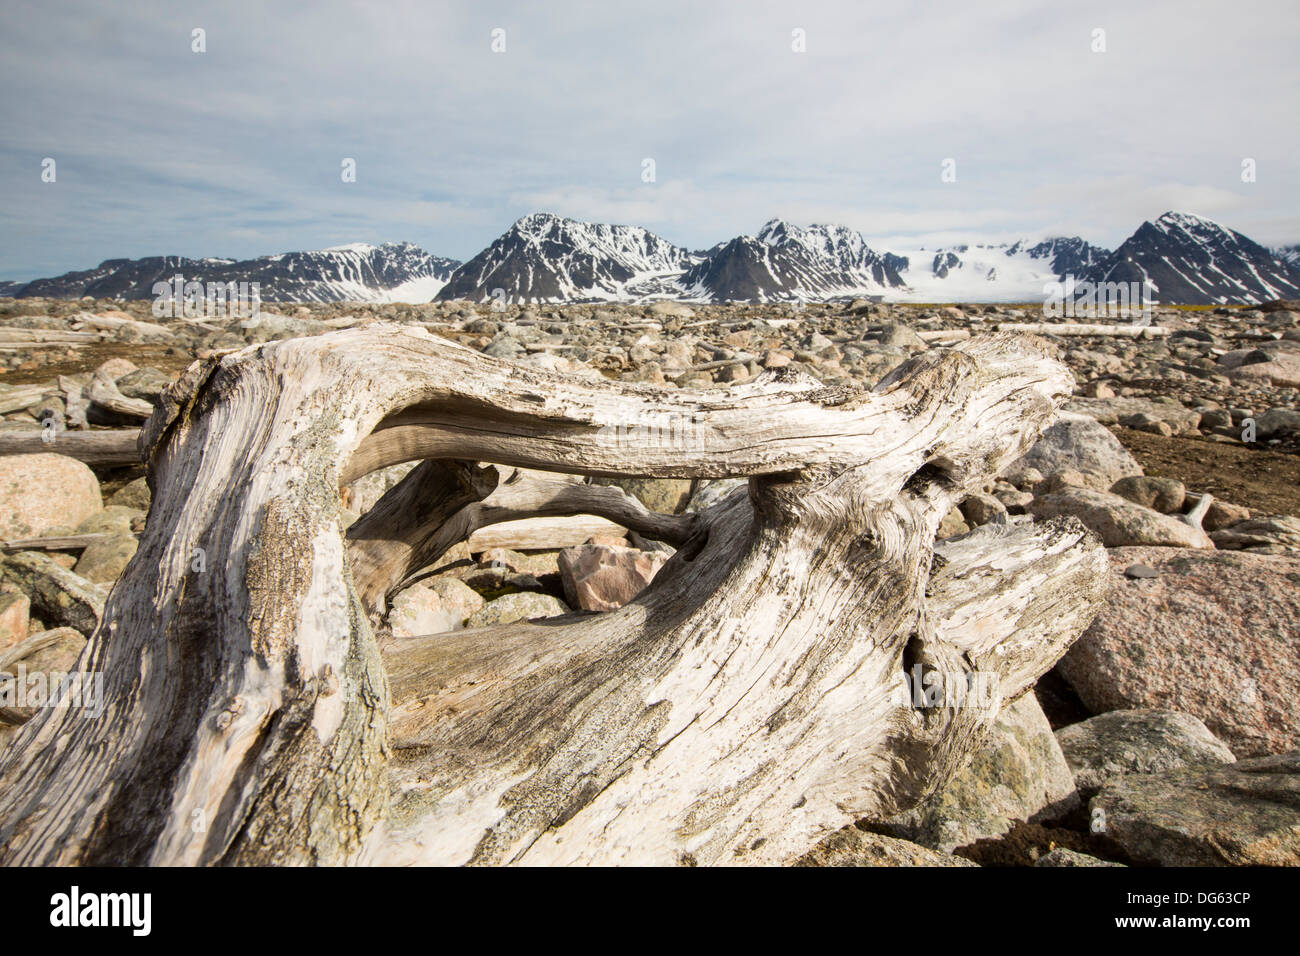 Drift wood from Siberian forests washed up on the shore at Smeerenburg (79°44'n 011°04'e) on northern Svalbard. - Stock Image